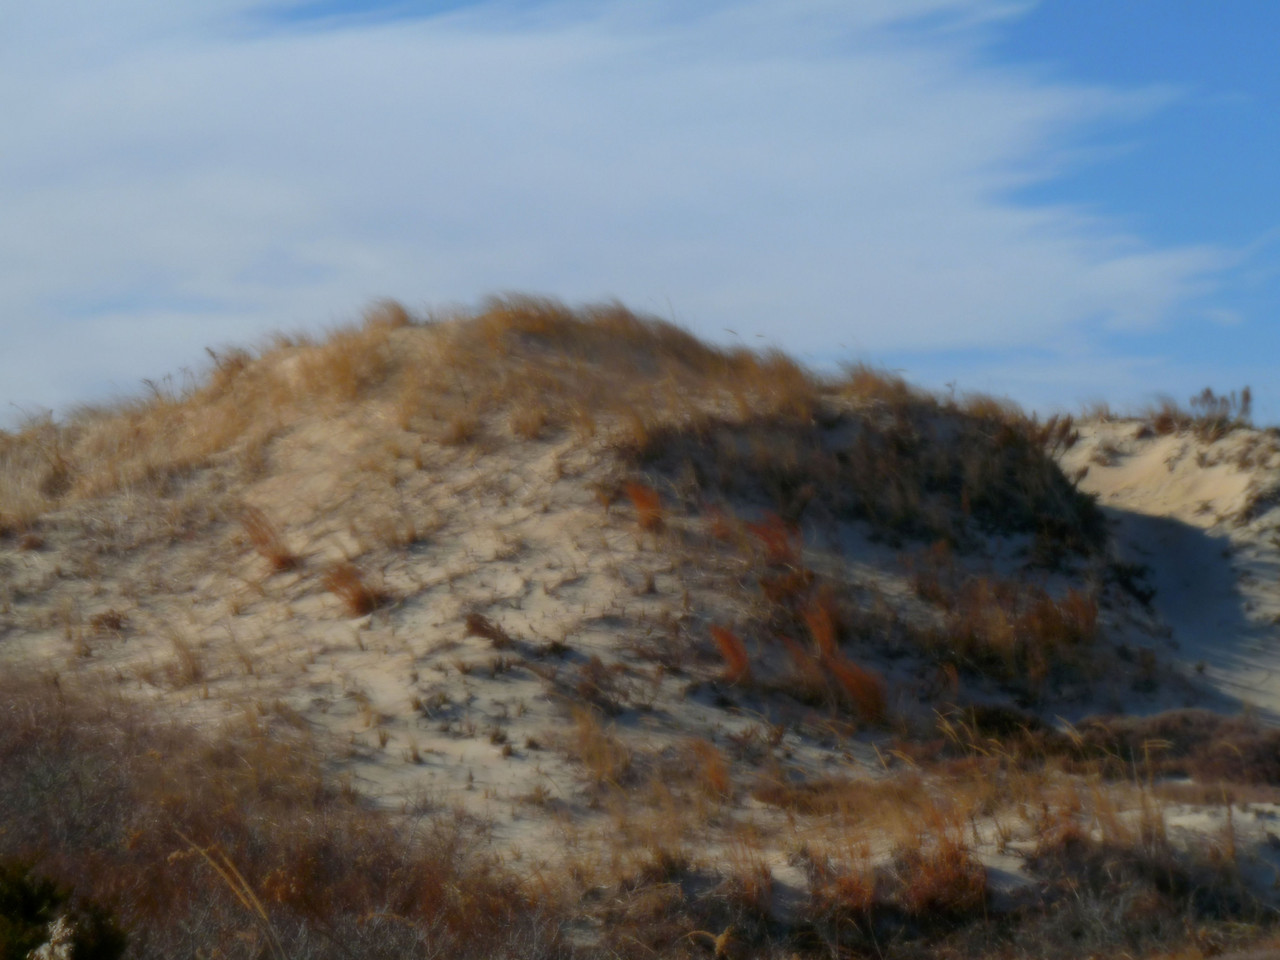 Sand dunes at Horseneck Beach, Westport , Ma<br /> Why Kelly and I chose the coldest day of the winter so far to go to the beach.....I'm just not sure. It was 12 degrees with 45 mph winds! The sand was face-whipping and the winds so strong that it was actually hard to stand up and shoot. Very fun afternoon of shooting!